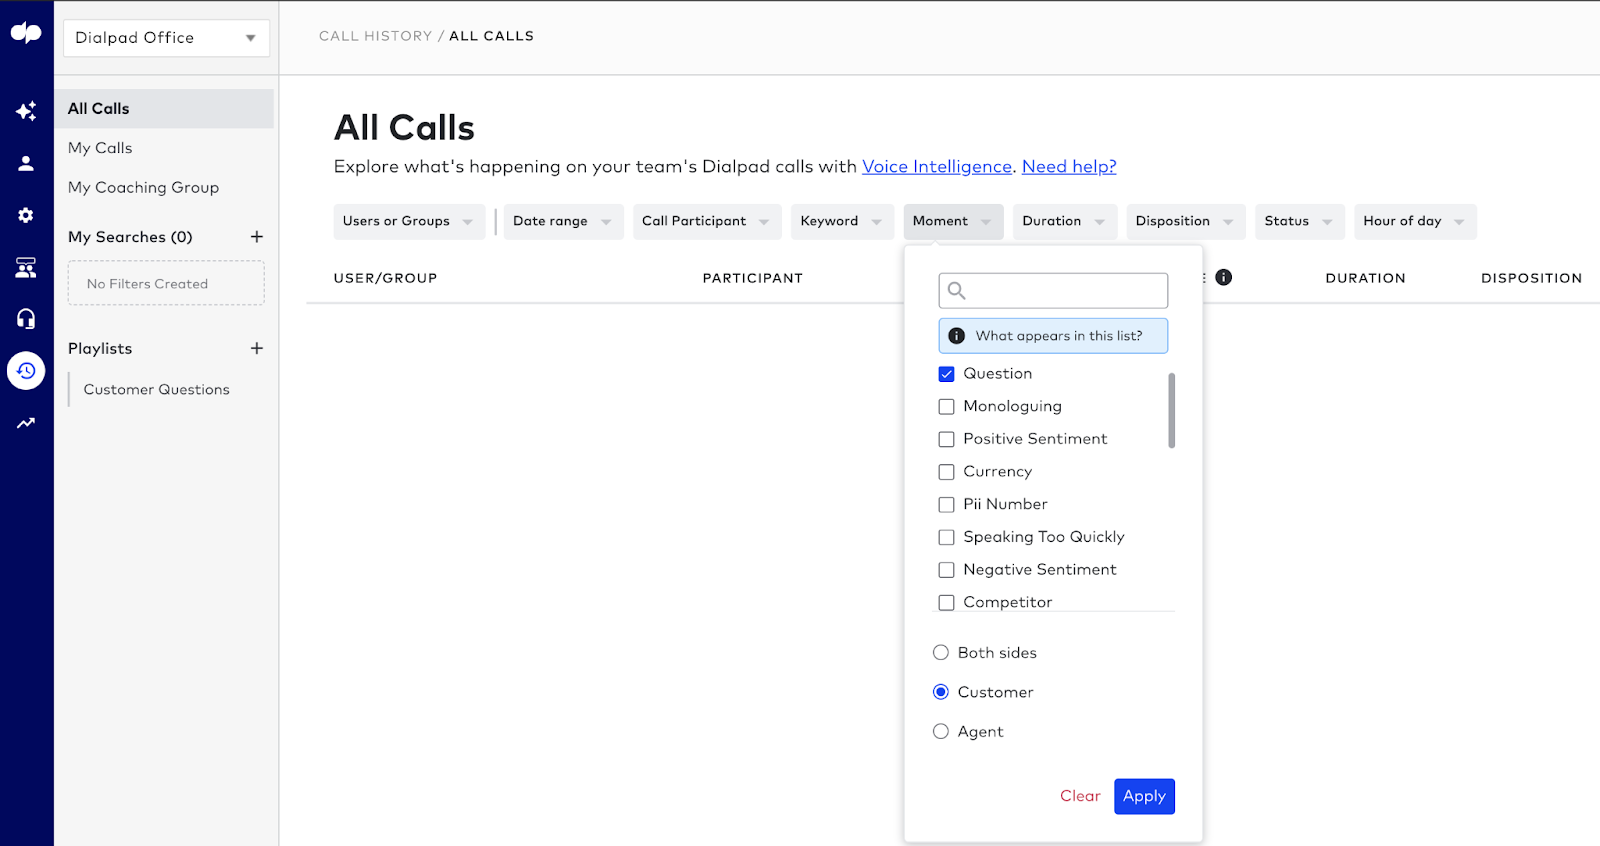 call playlists in dialpad contact center